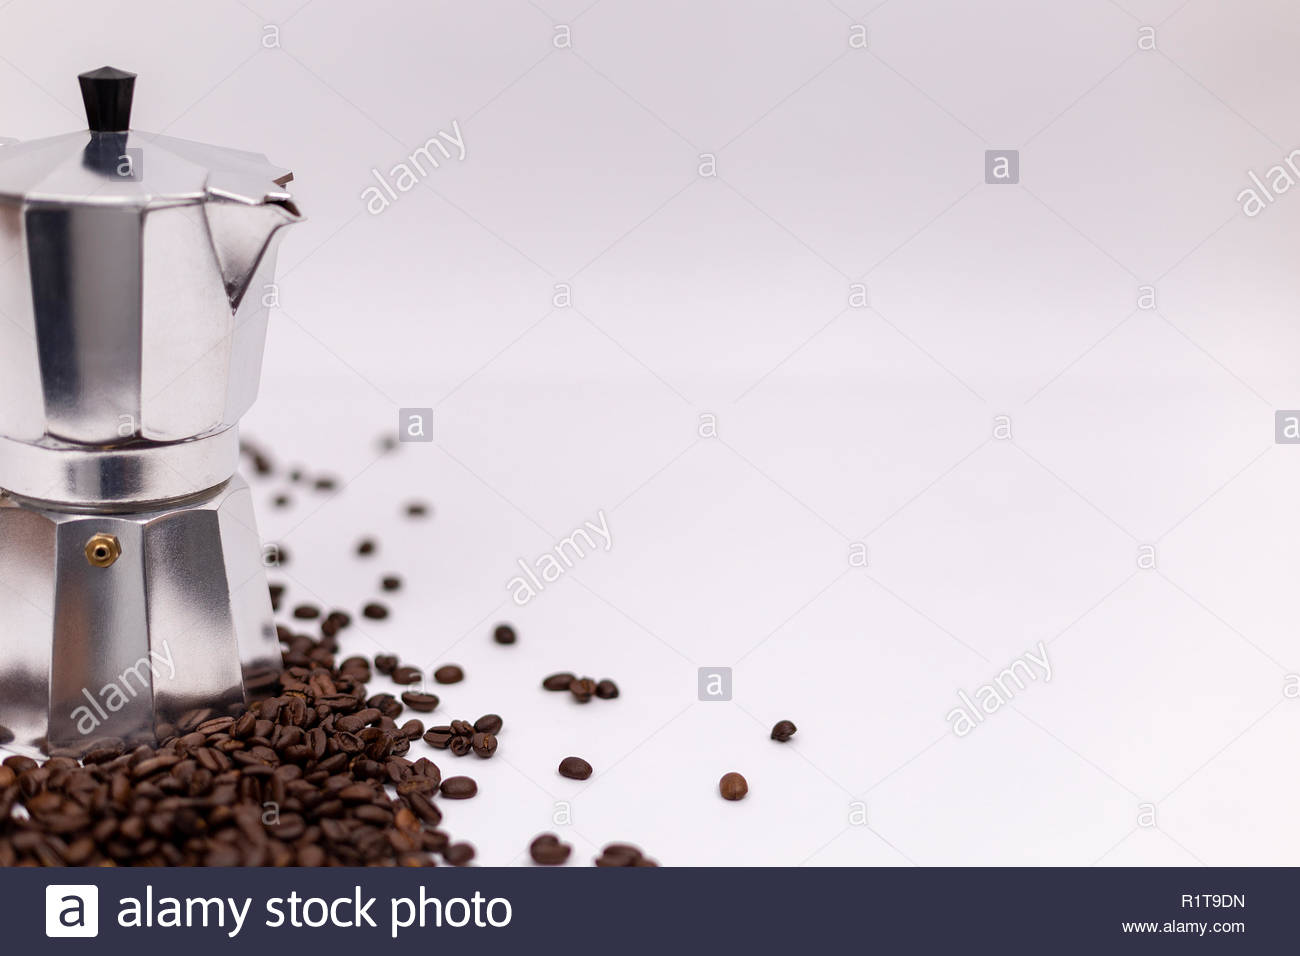 Coffee Maker Caffettiera With Coffee Beans On White Background